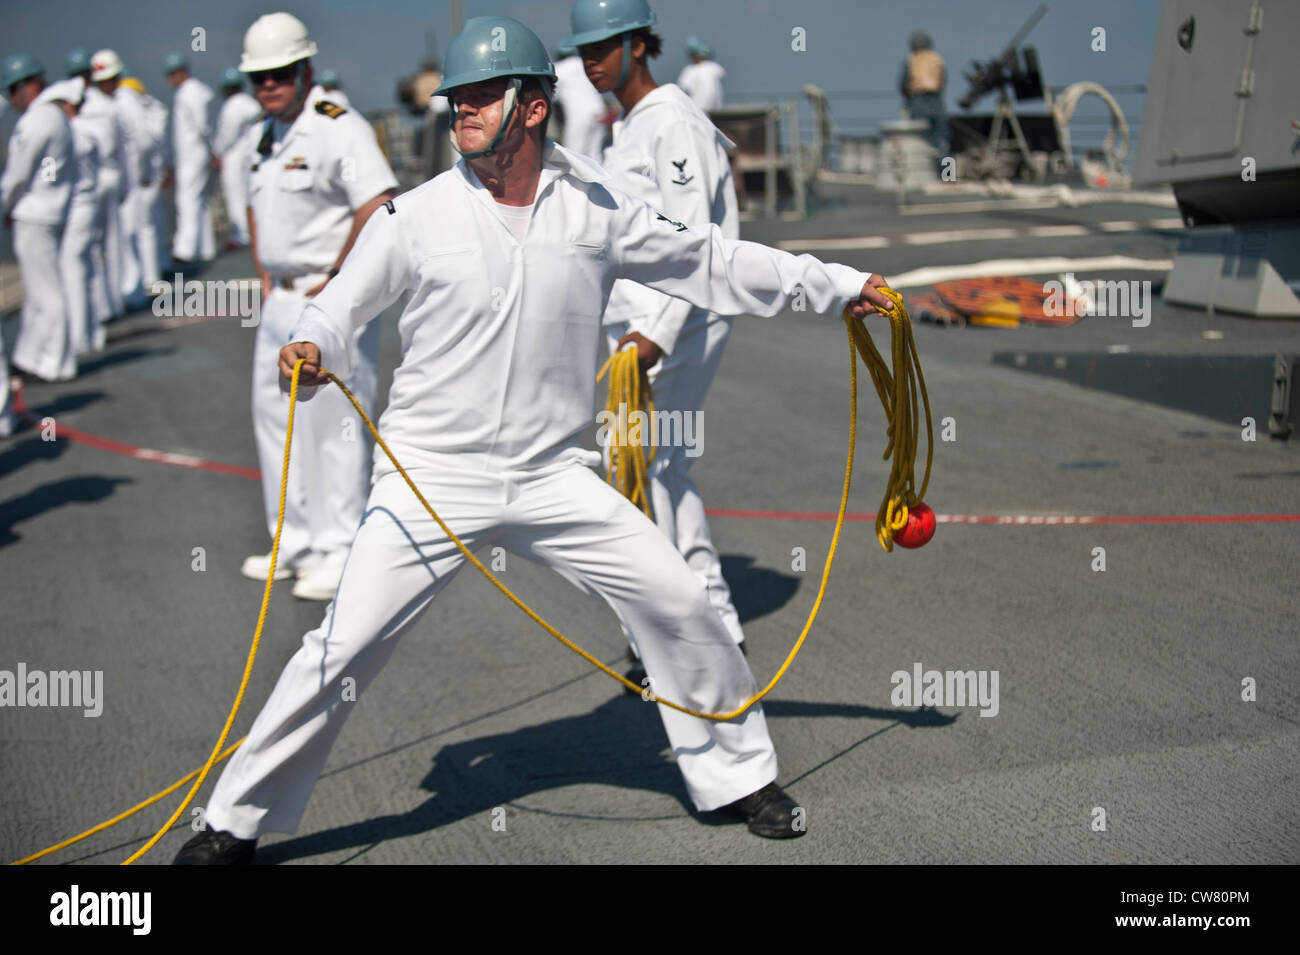 Boatswain's Mate 3rd Class Ron Welch throws heaving line to the forward tug as the guided-missile destroyer - Stock Image